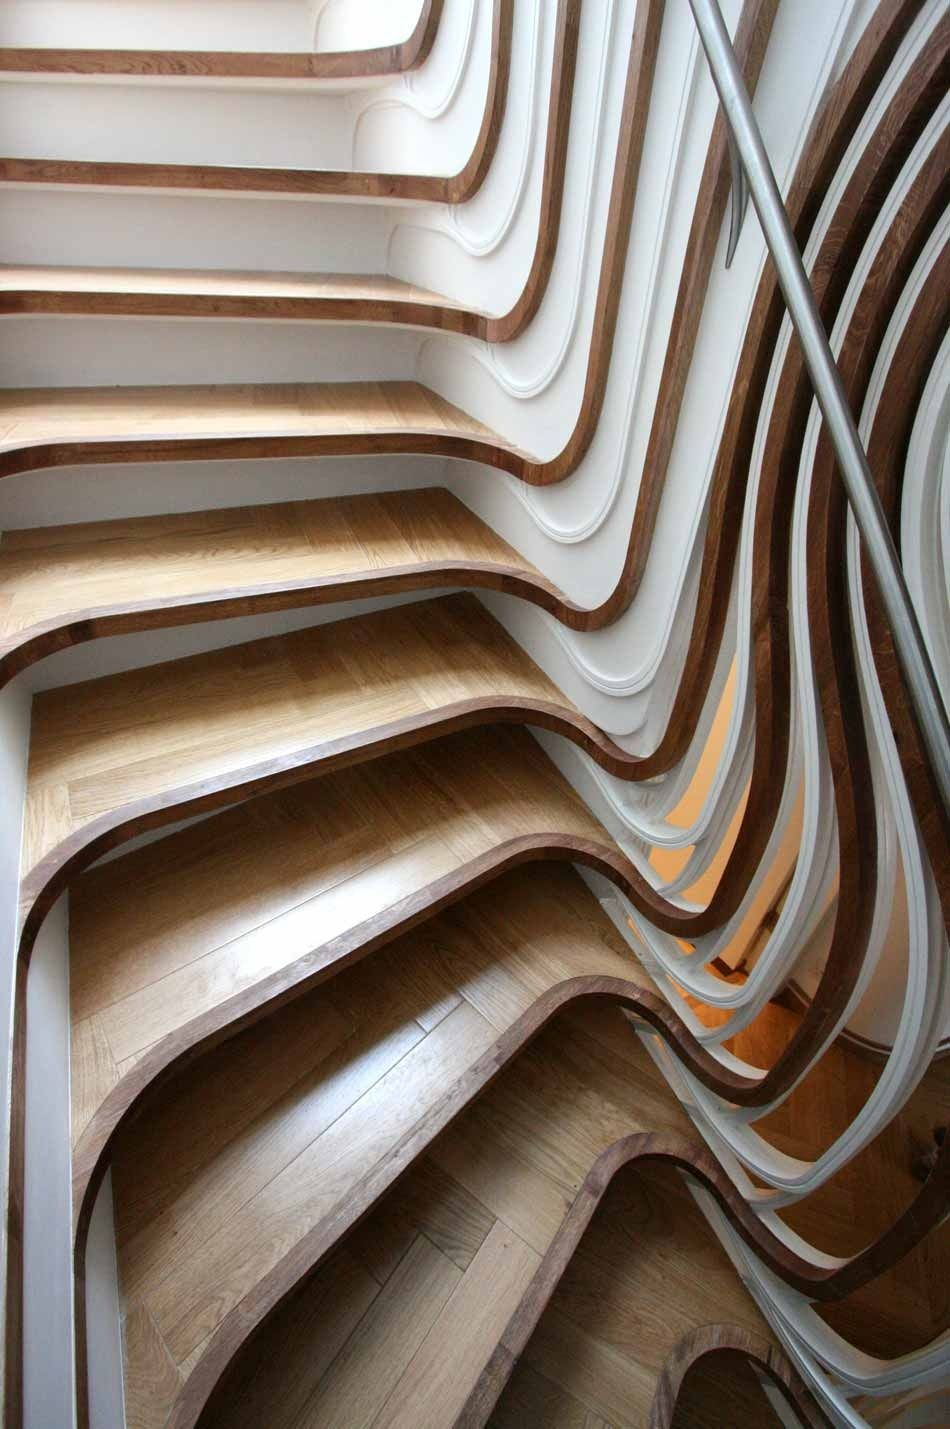 Sensualscaping Stairs by Atmos Studio | Pinterest ...